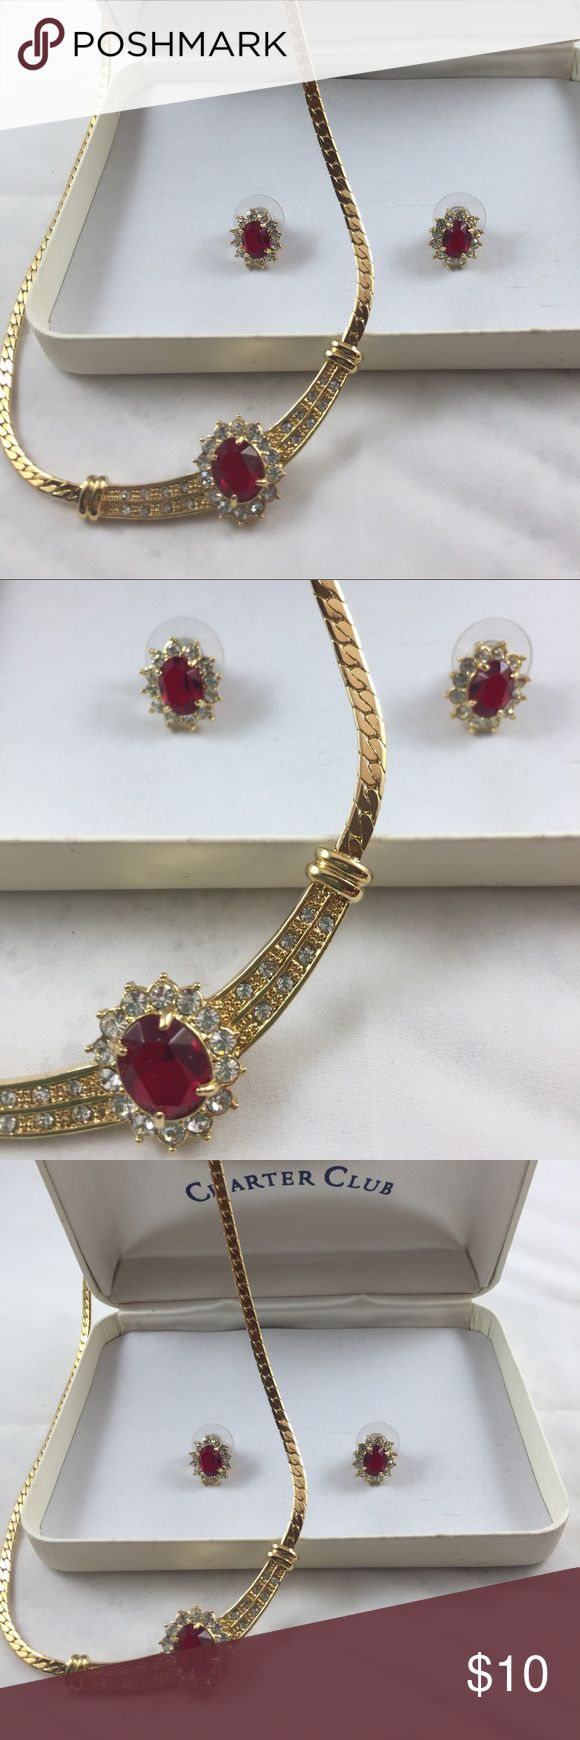 Charter Club Necklace and Earring Set Gold/Ruby Charter Club Costume Jewelry Necklace and Earring Set in Gold and Ruby. Like new. Gorgeous sparkle. Charter Club Jewelry Necklaces